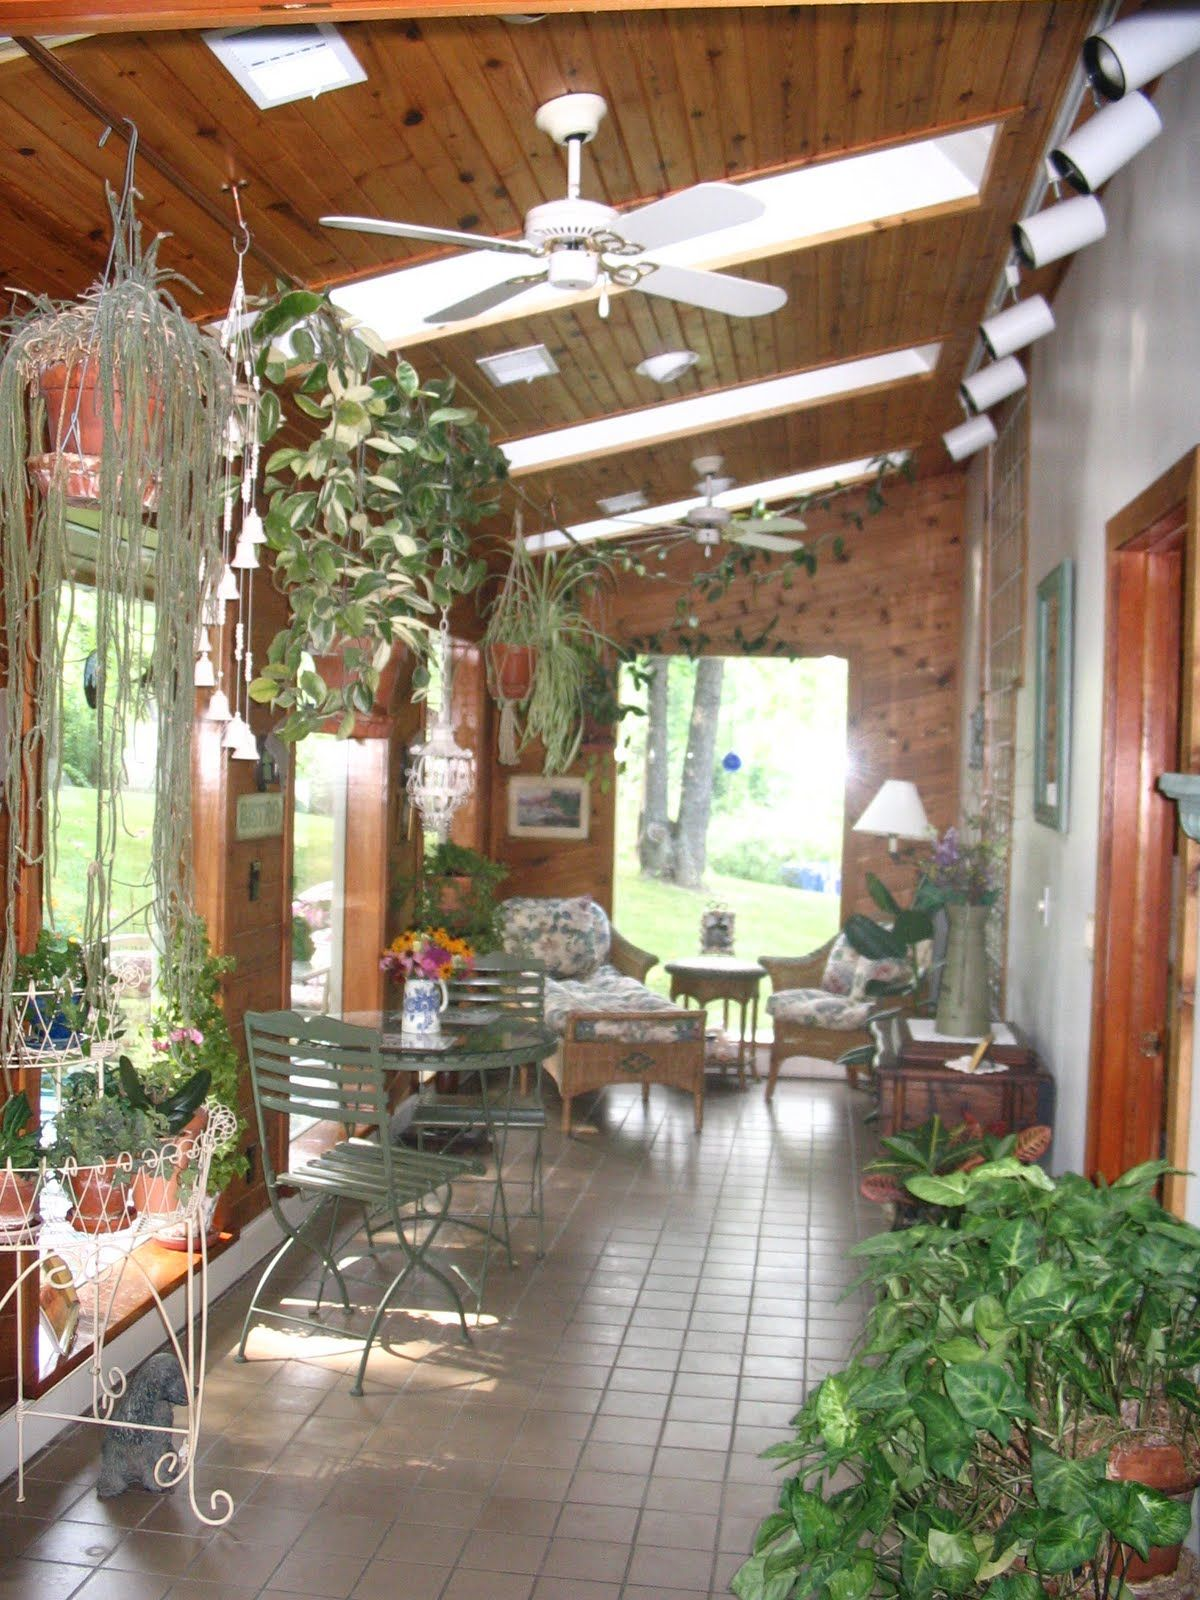 plants for sunrooms about sunroom design ideas pictures with floortile and hanging plants - Sunroom Design Ideas Pictures